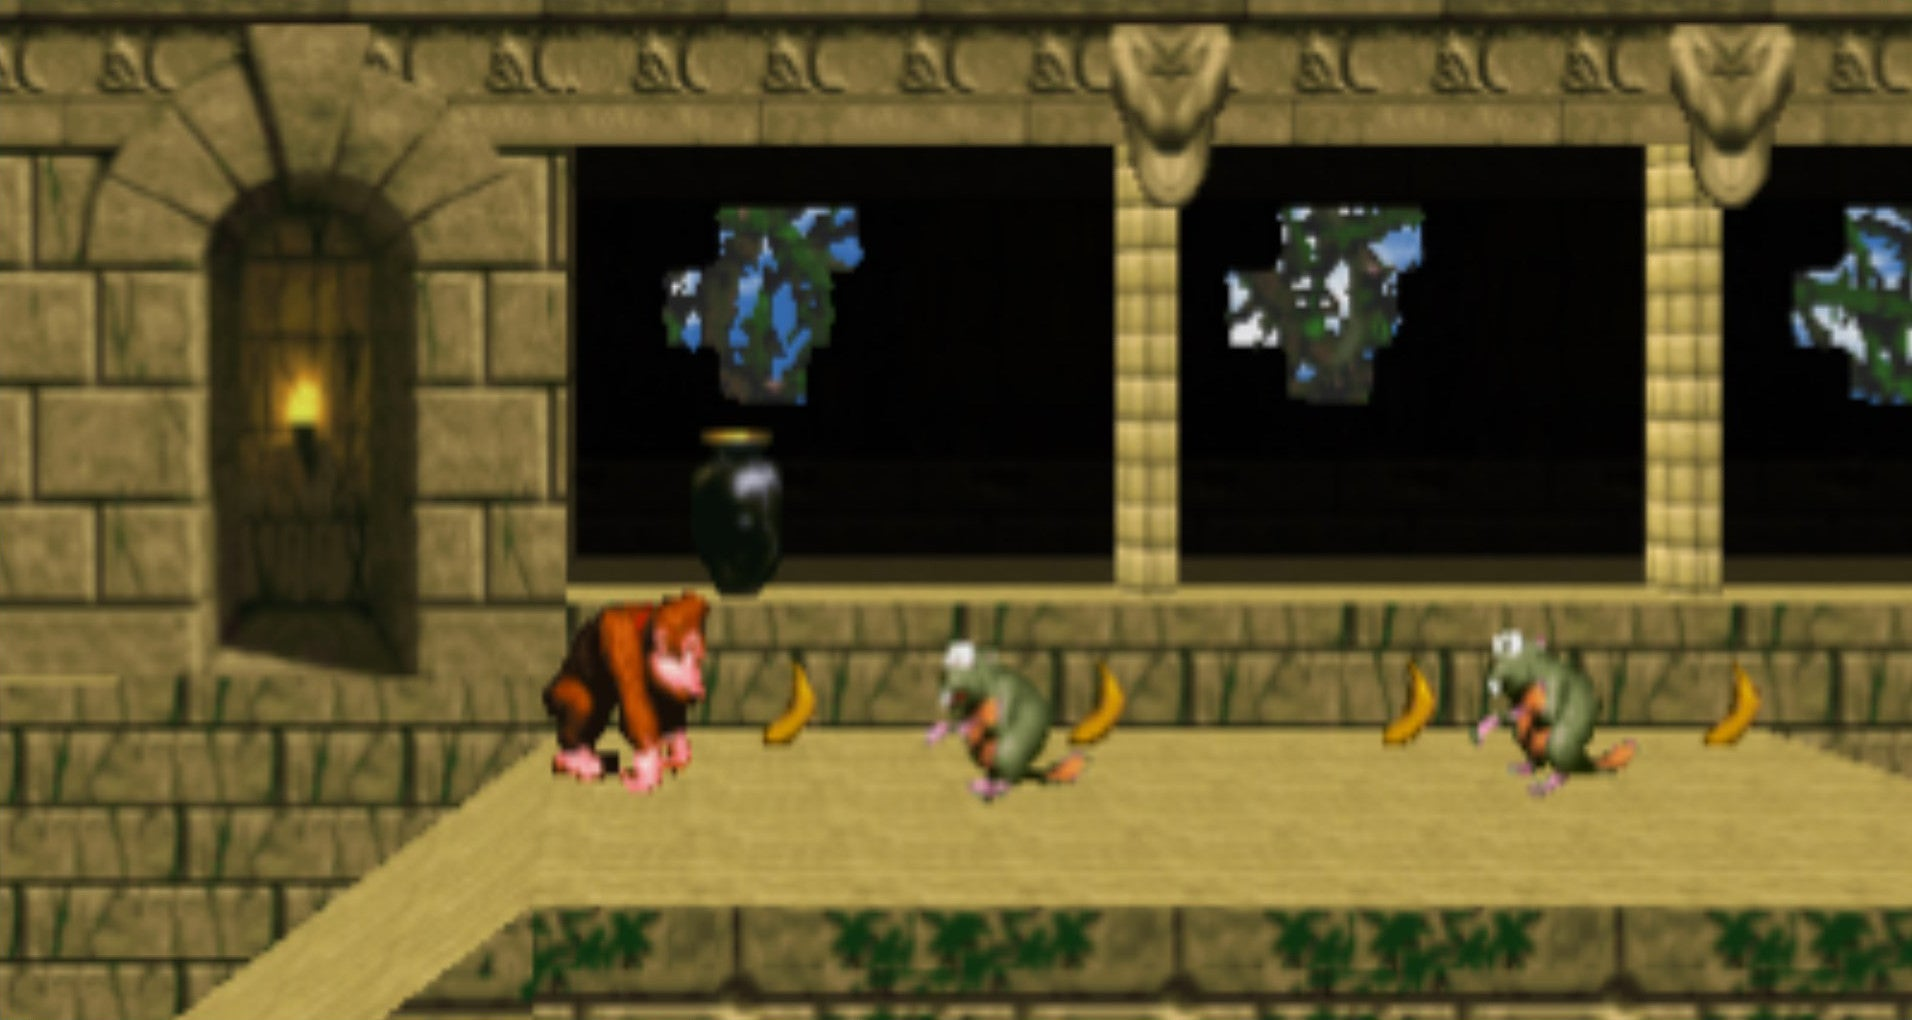 Modder Puts Donkey Kong in Doom, Turns Game into a Platformer